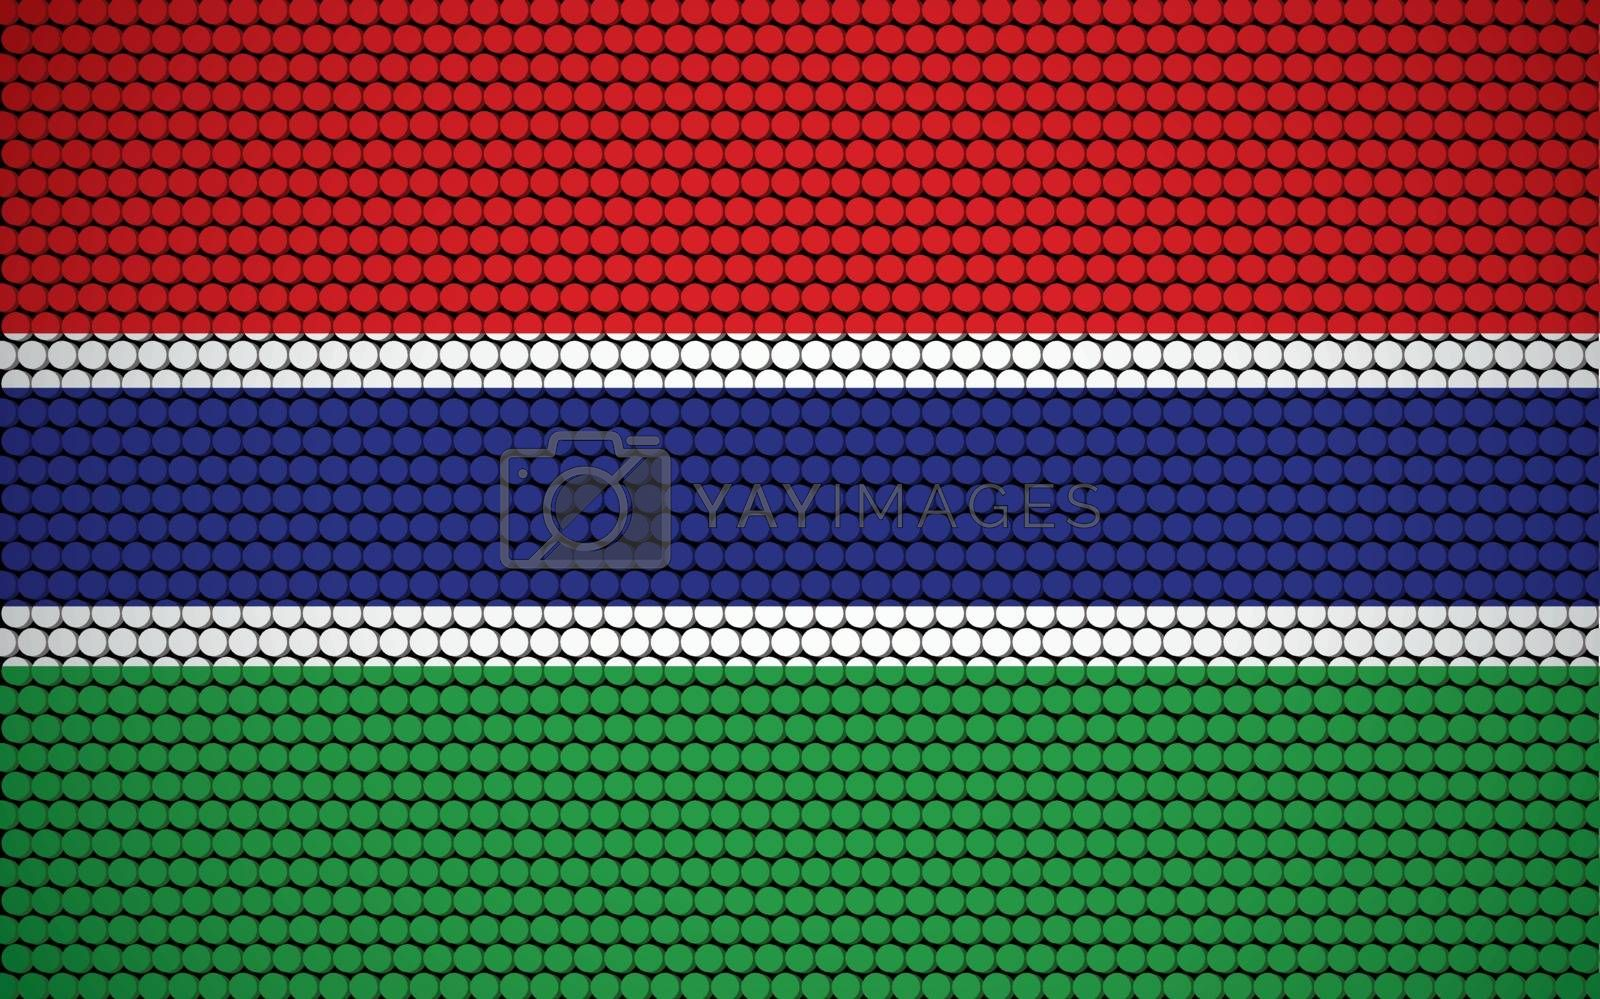 Abstract flag of Gambia made of circles. Gambian flag designed with colored dots giving it a modern and futuristic abstract look.